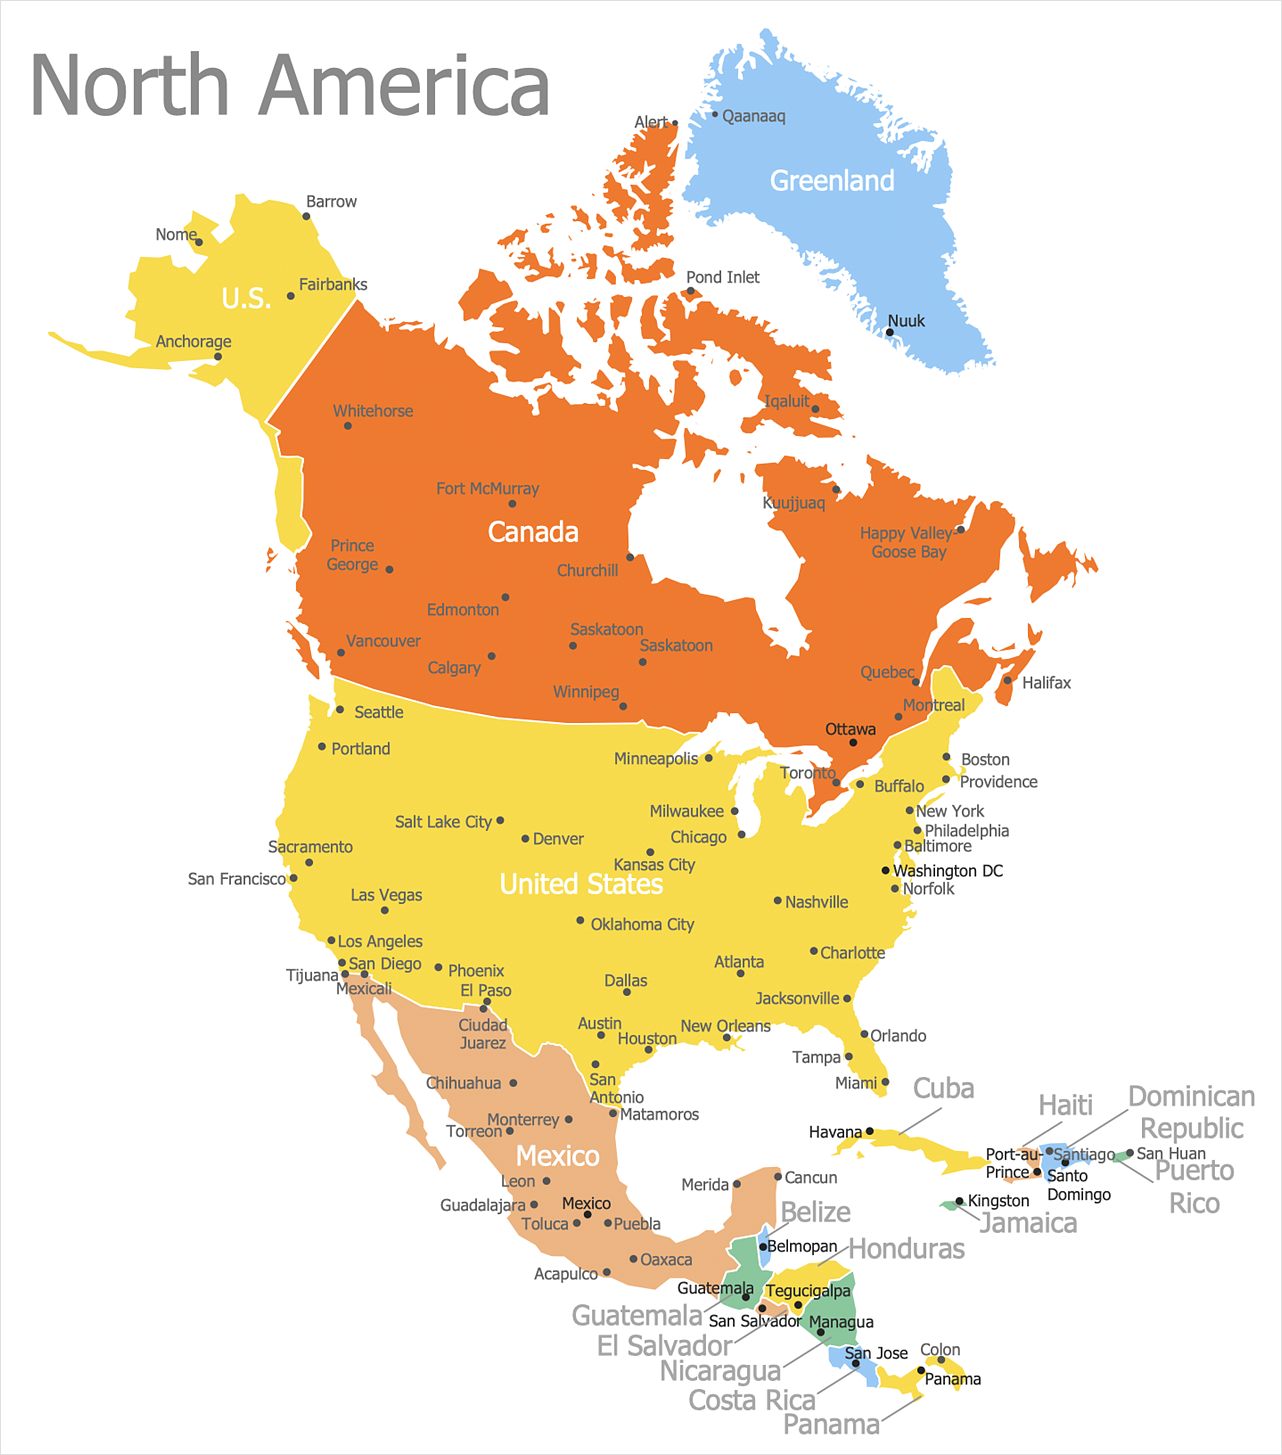 How to Draw a Map of North America